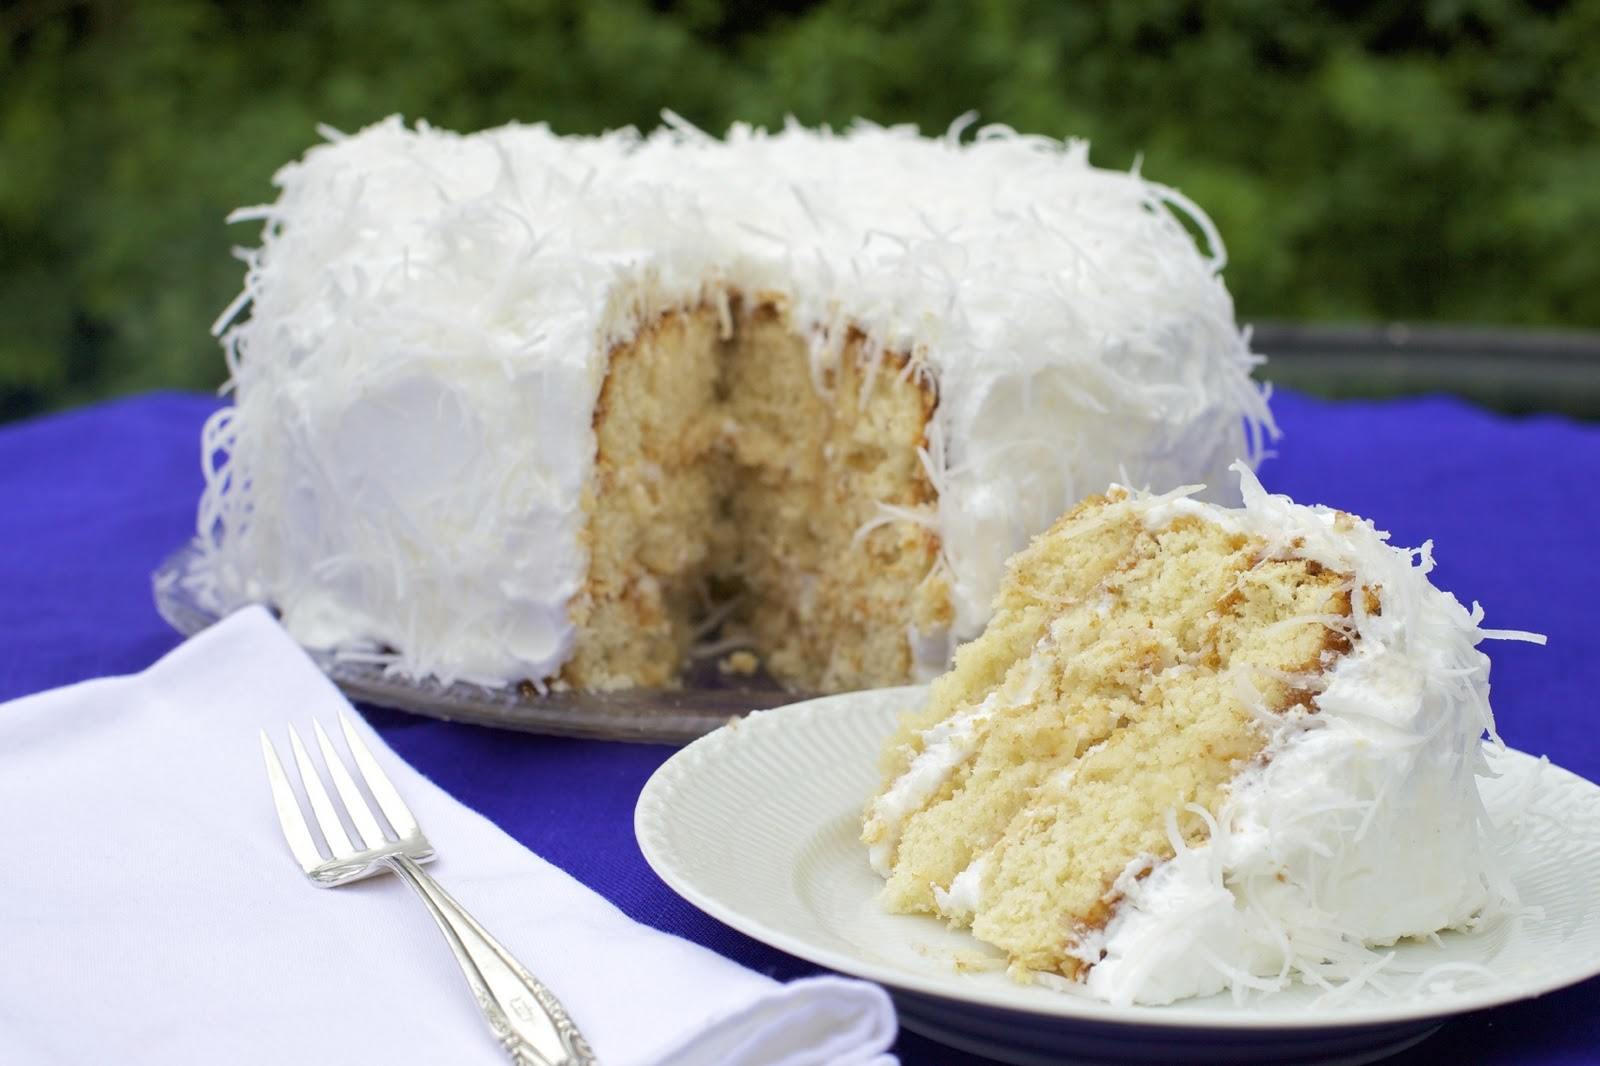 Coconut Cake Recipes With Pictures : Sprigs of Rosemary: Ina s Coconut Cake Topped the Birthday ...